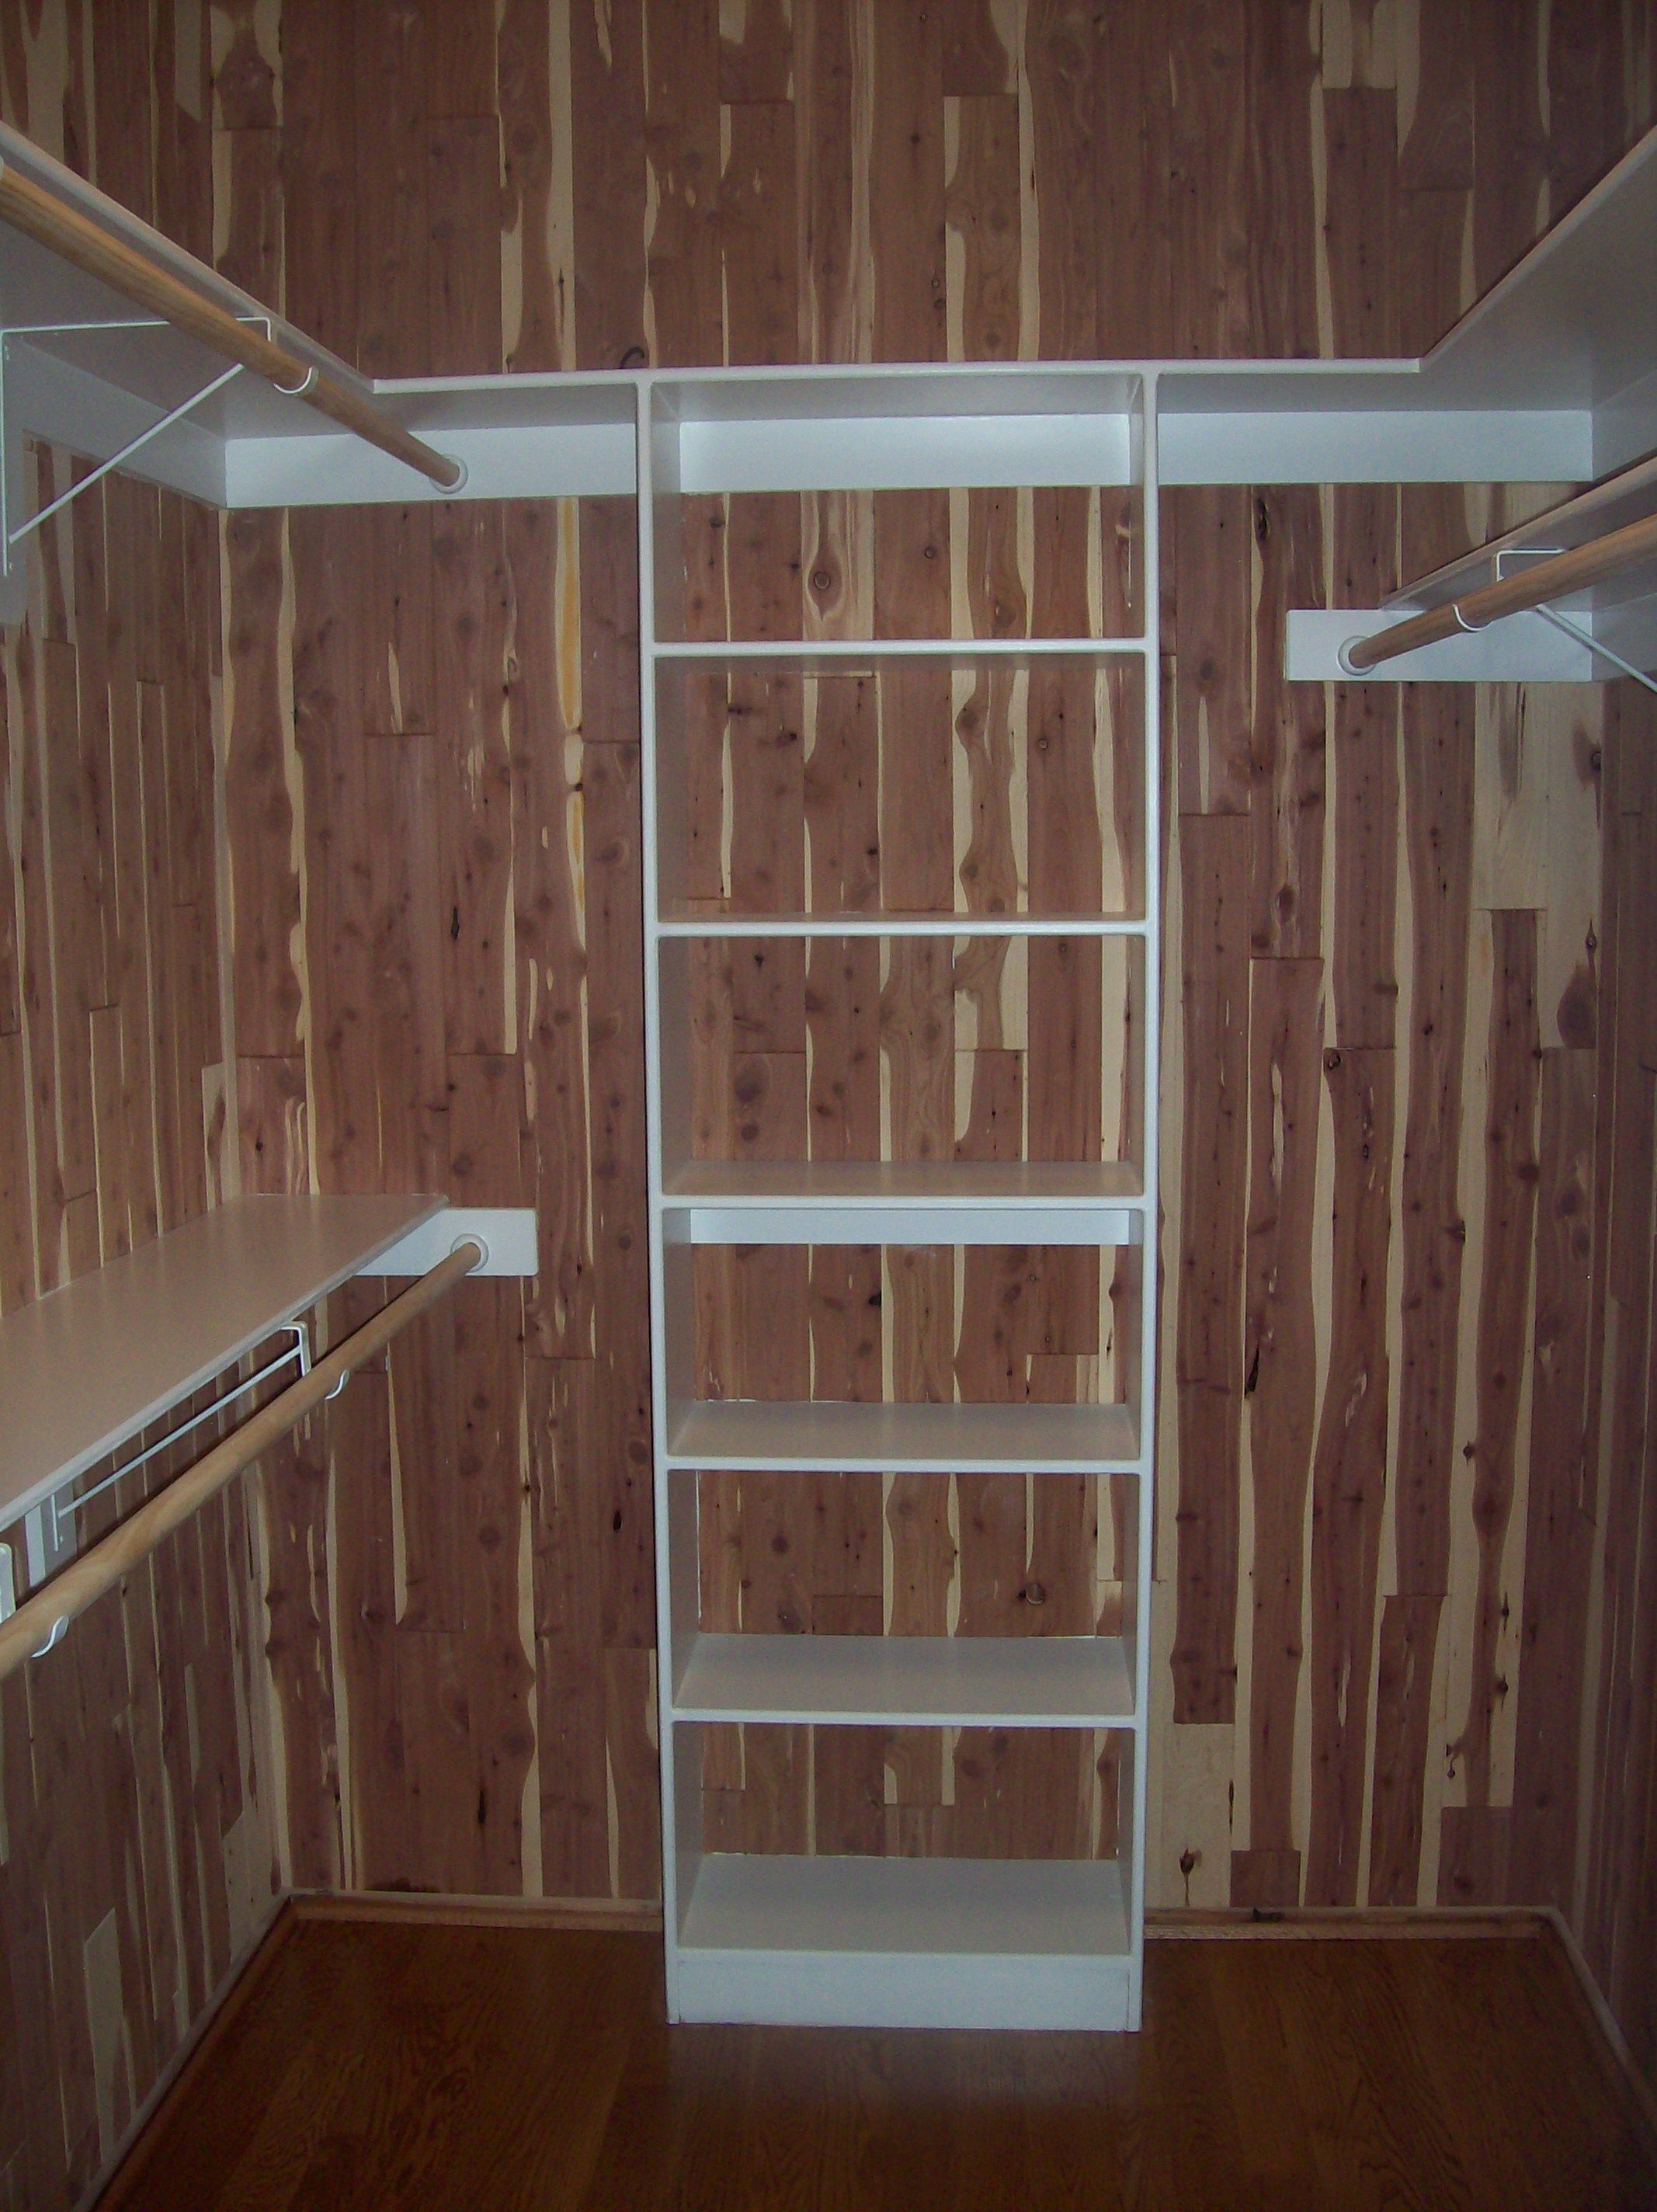 Captivating A Custom Cedar Closet. We Absolutely Love Cedar Scent And The Beauty Of The  Wood